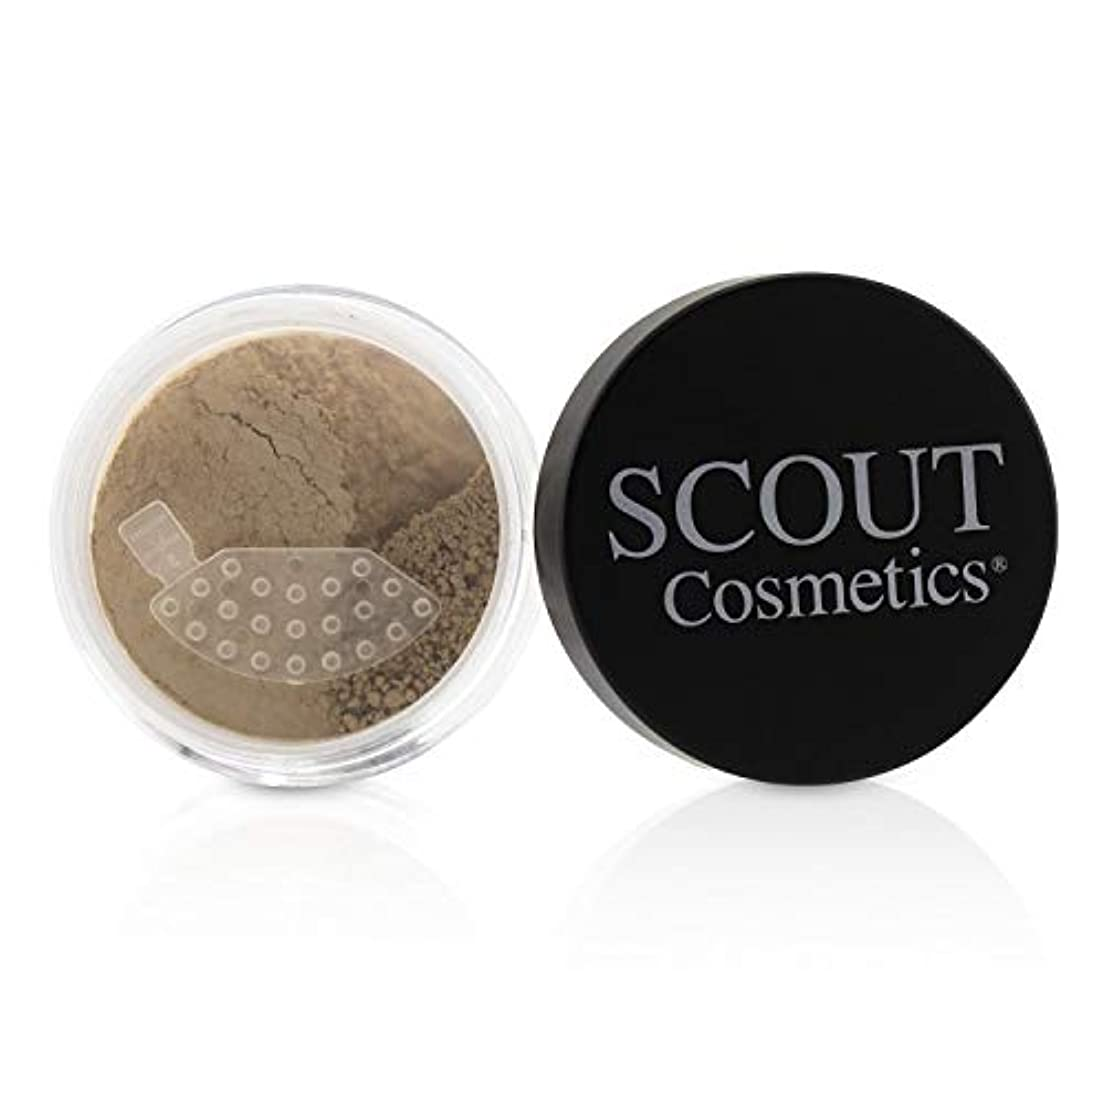 忙しいセンチメートル不十分なSCOUT Cosmetics Mineral Powder Foundation SPF 20 - # Camel 8g/0.28oz並行輸入品